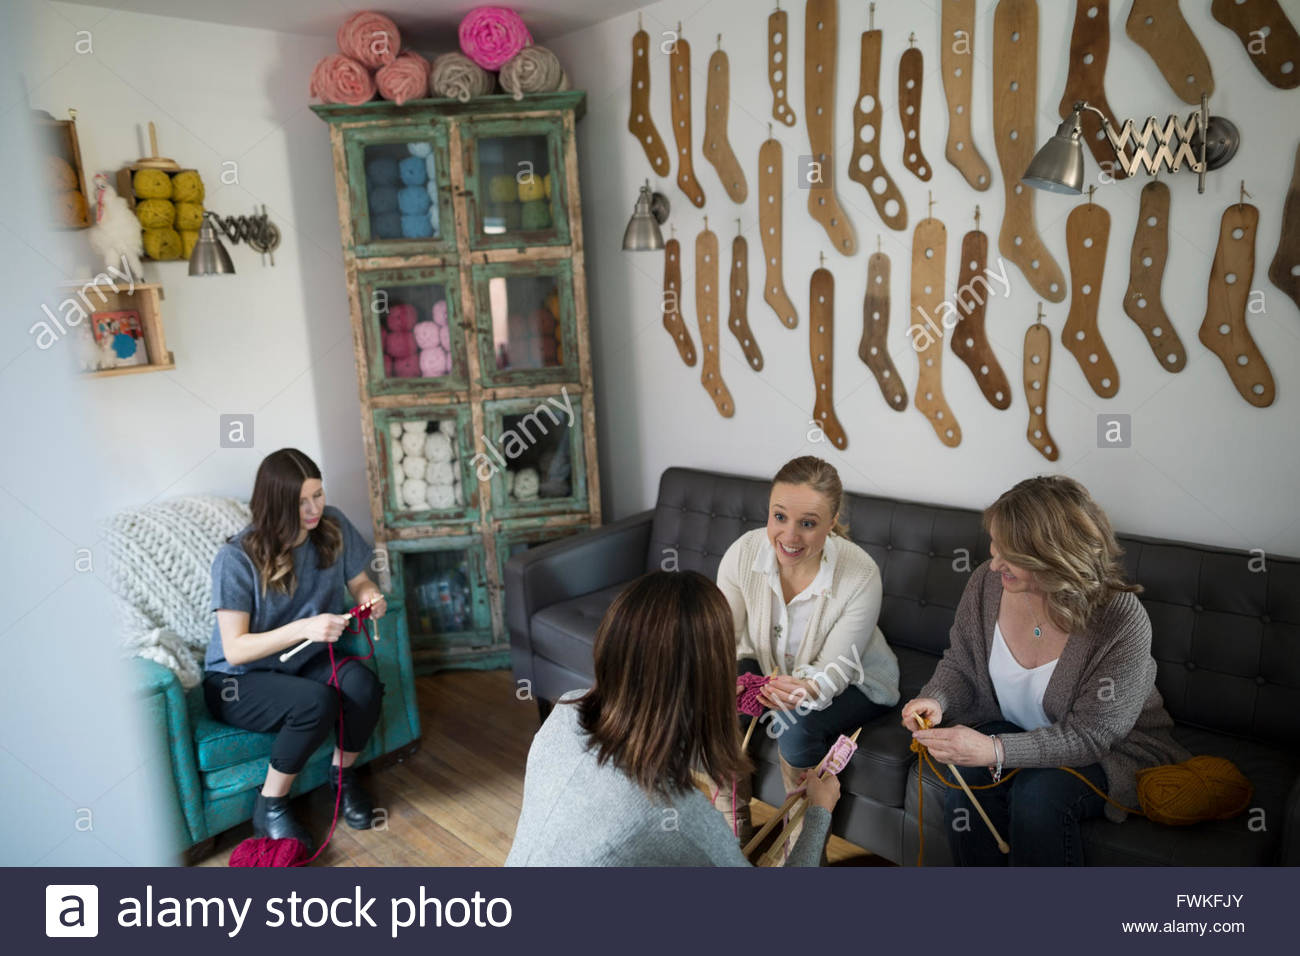 Women learning knitting at yarn store - Stock Image